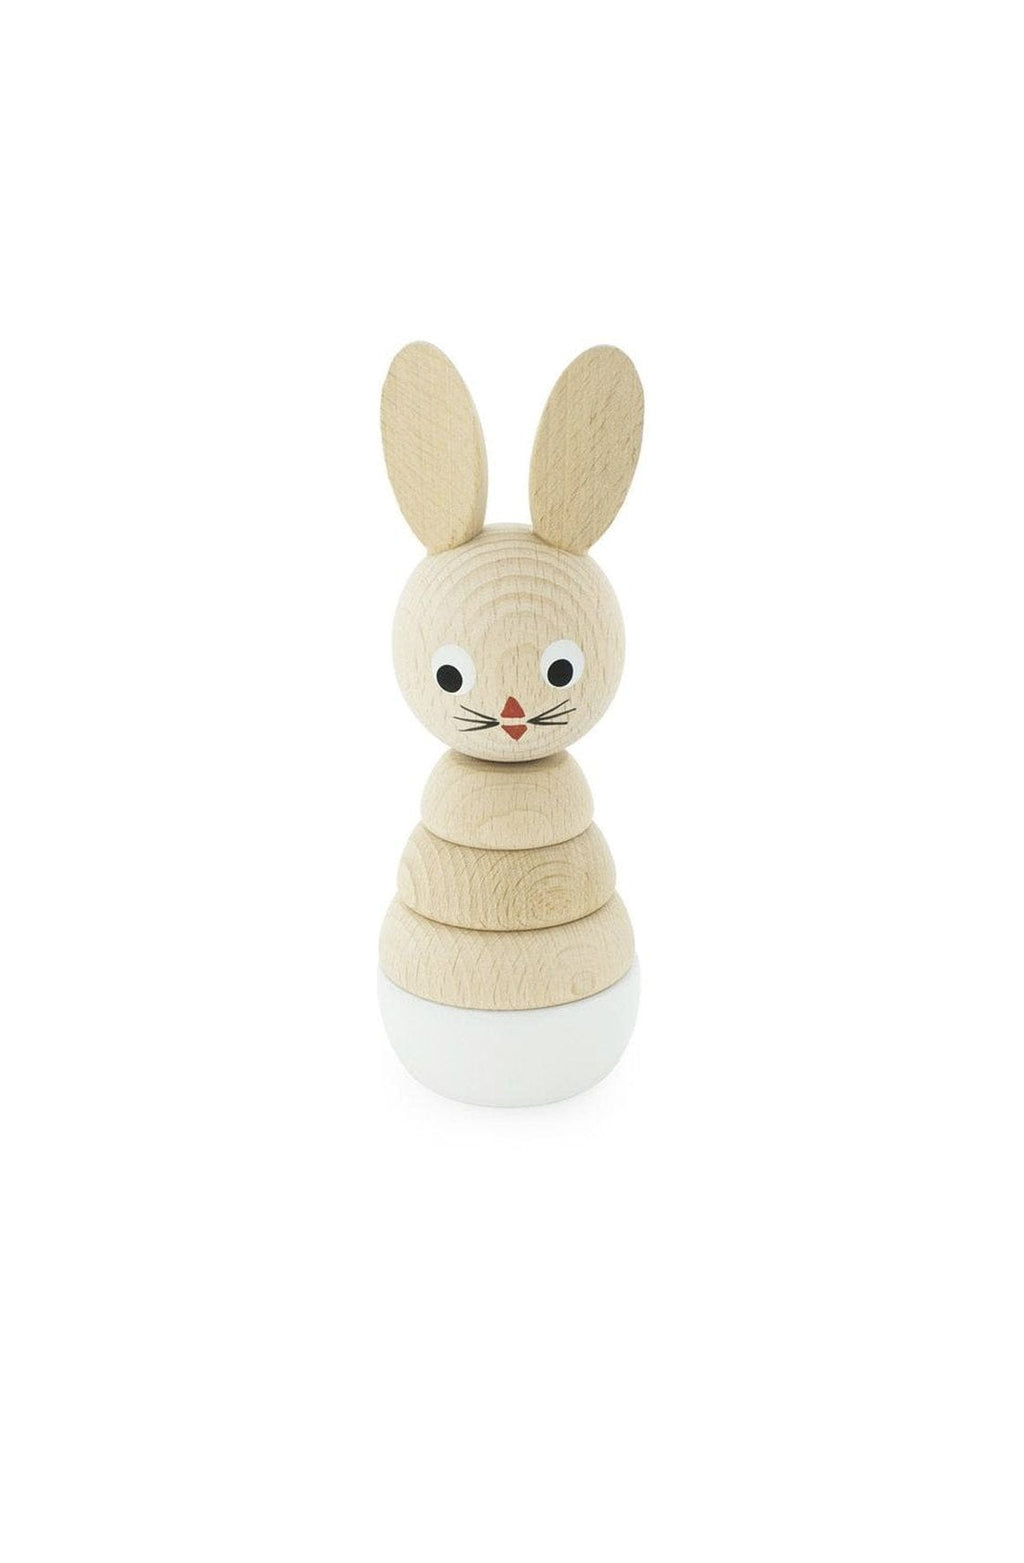 Miva Vacov Wooden Rabbit Stacking Puzzle, White Bunny